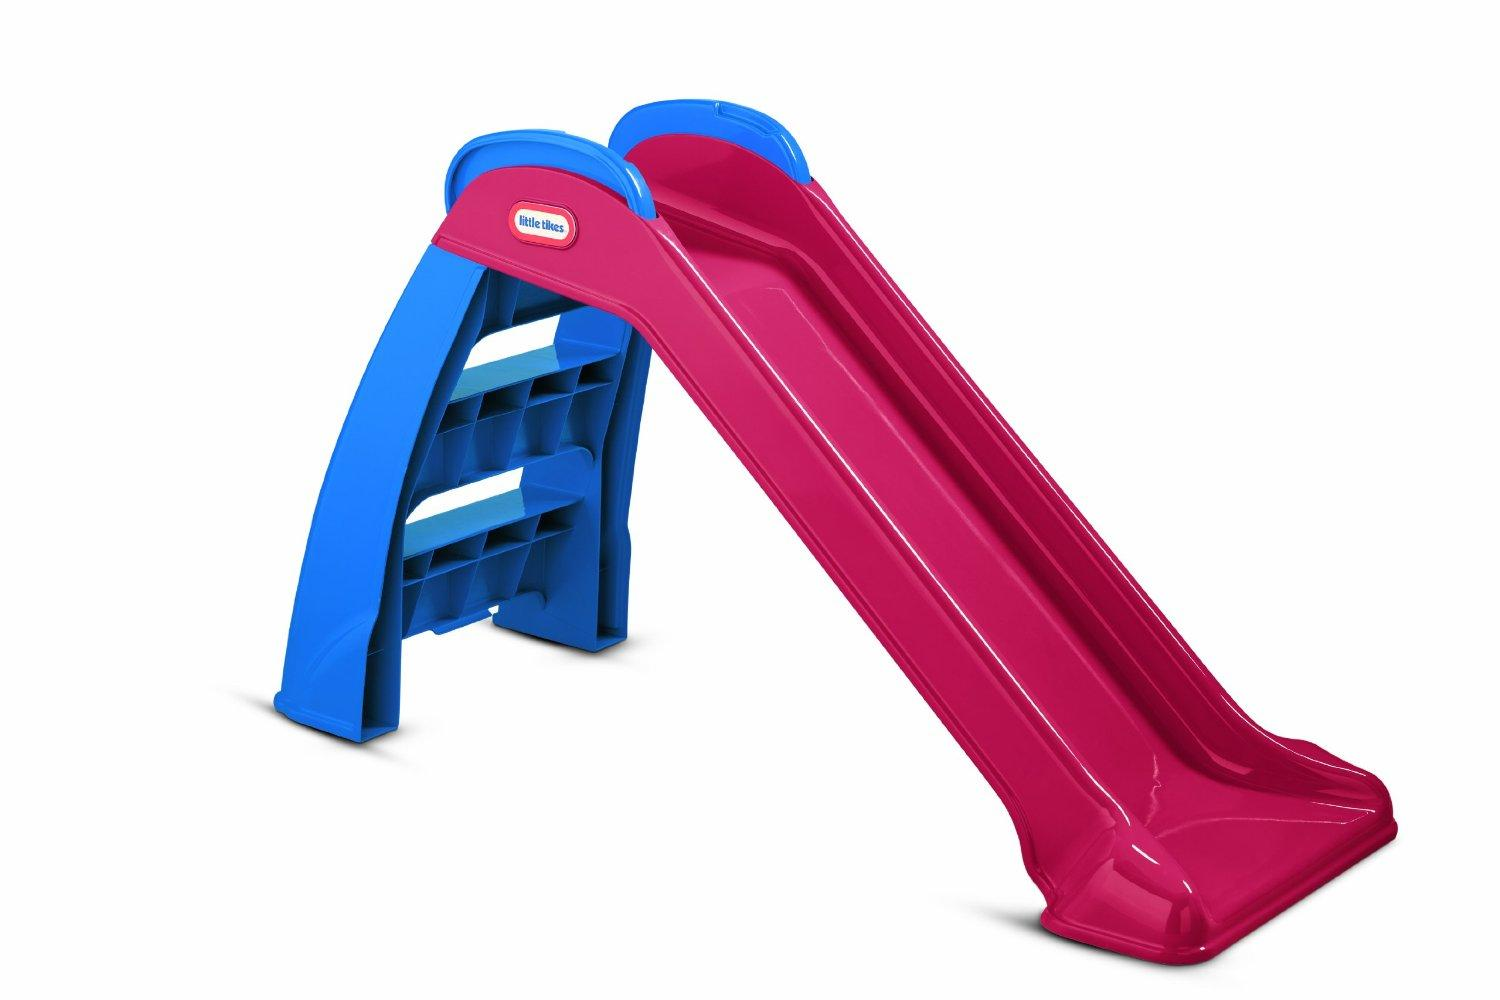 $20 Little Tikes First Slide